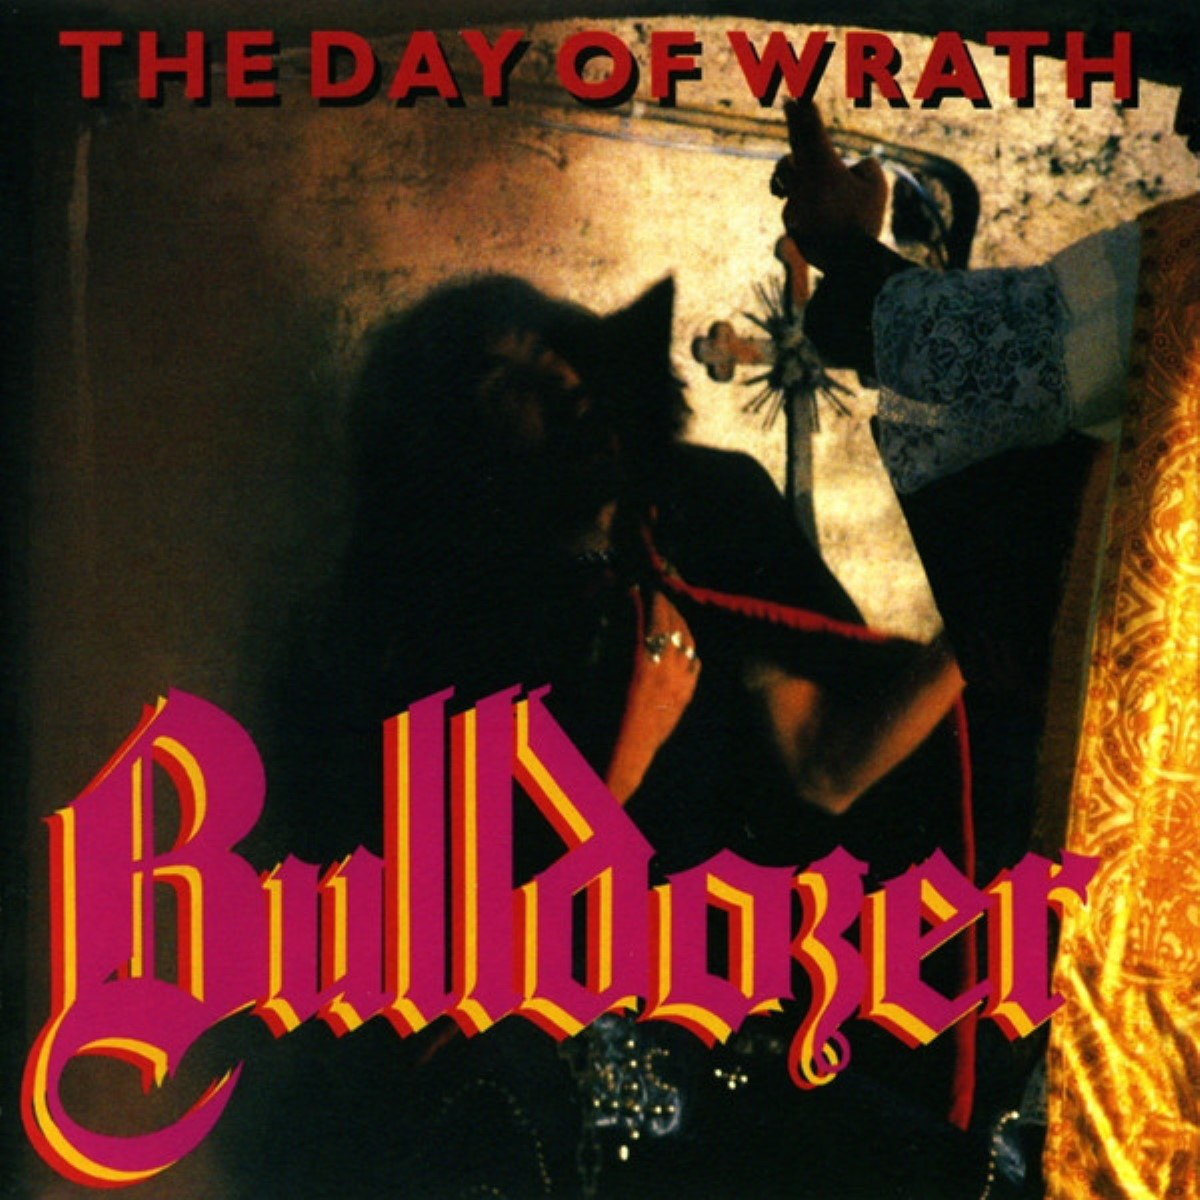 Review for Bulldozer - The Day of Wrath